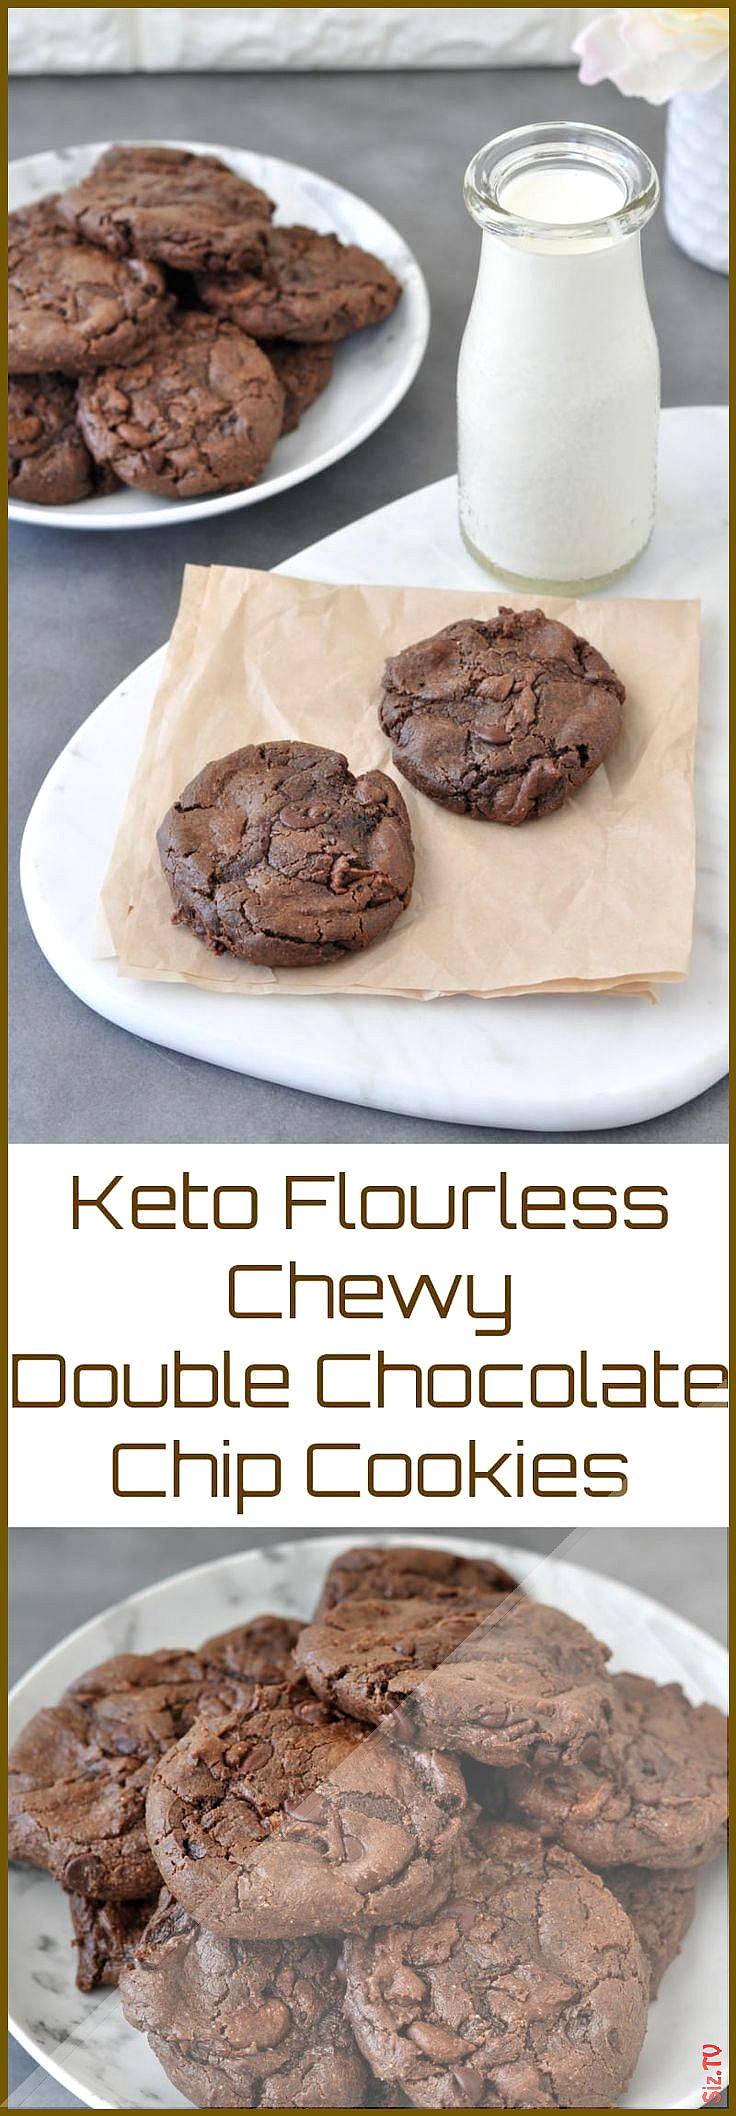 Flourless Keto Chewy Double Chocolate Chip Cookies  Keto Brownies  Ideas of Keto Brownies ketobrowni...